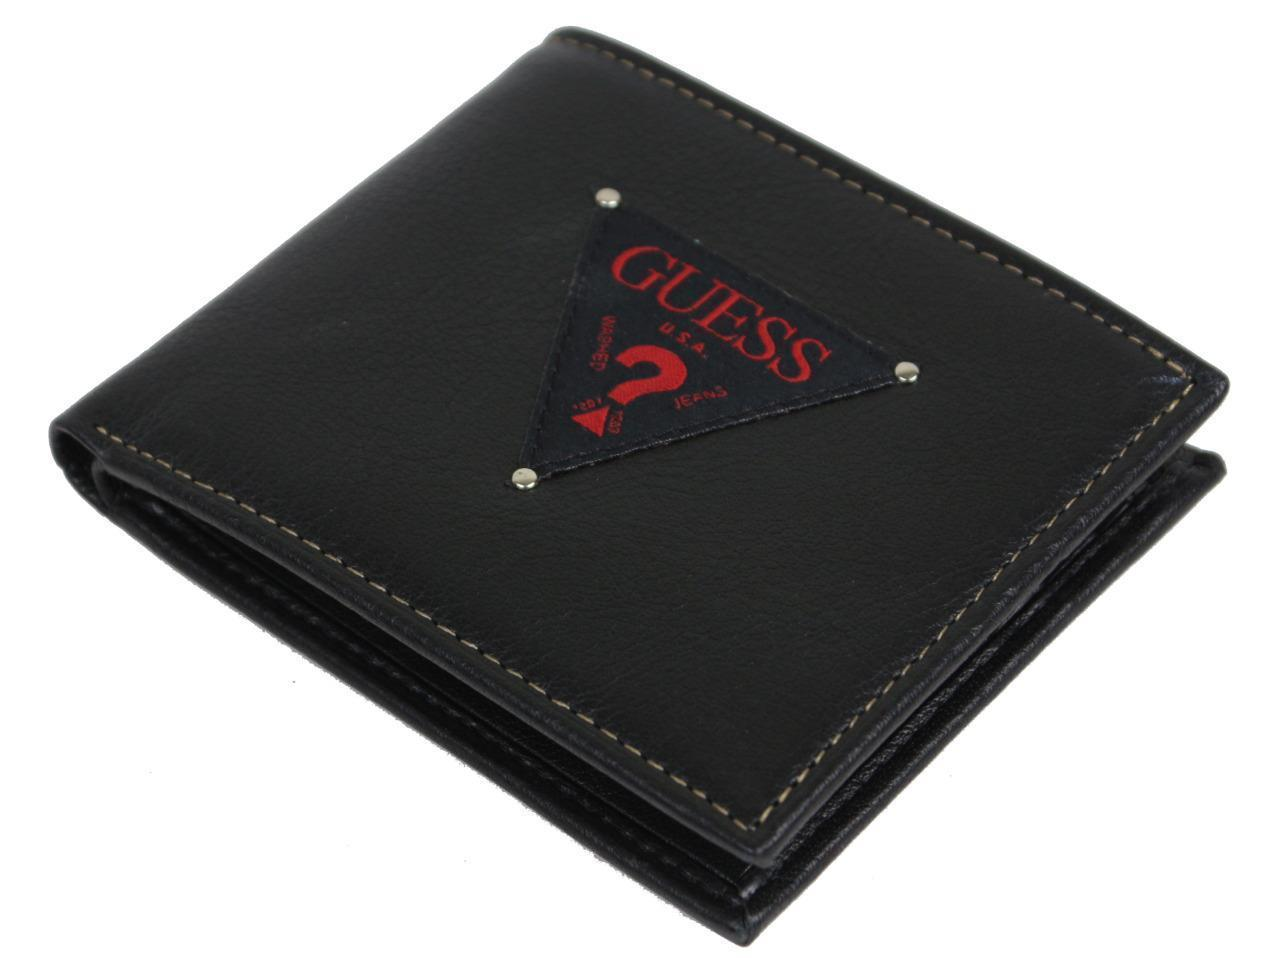 NEW GUESS MEN'S LEATHER DOUBLE BILLFOLD CREDIT CARD WALLET BLACK 31GU13X048